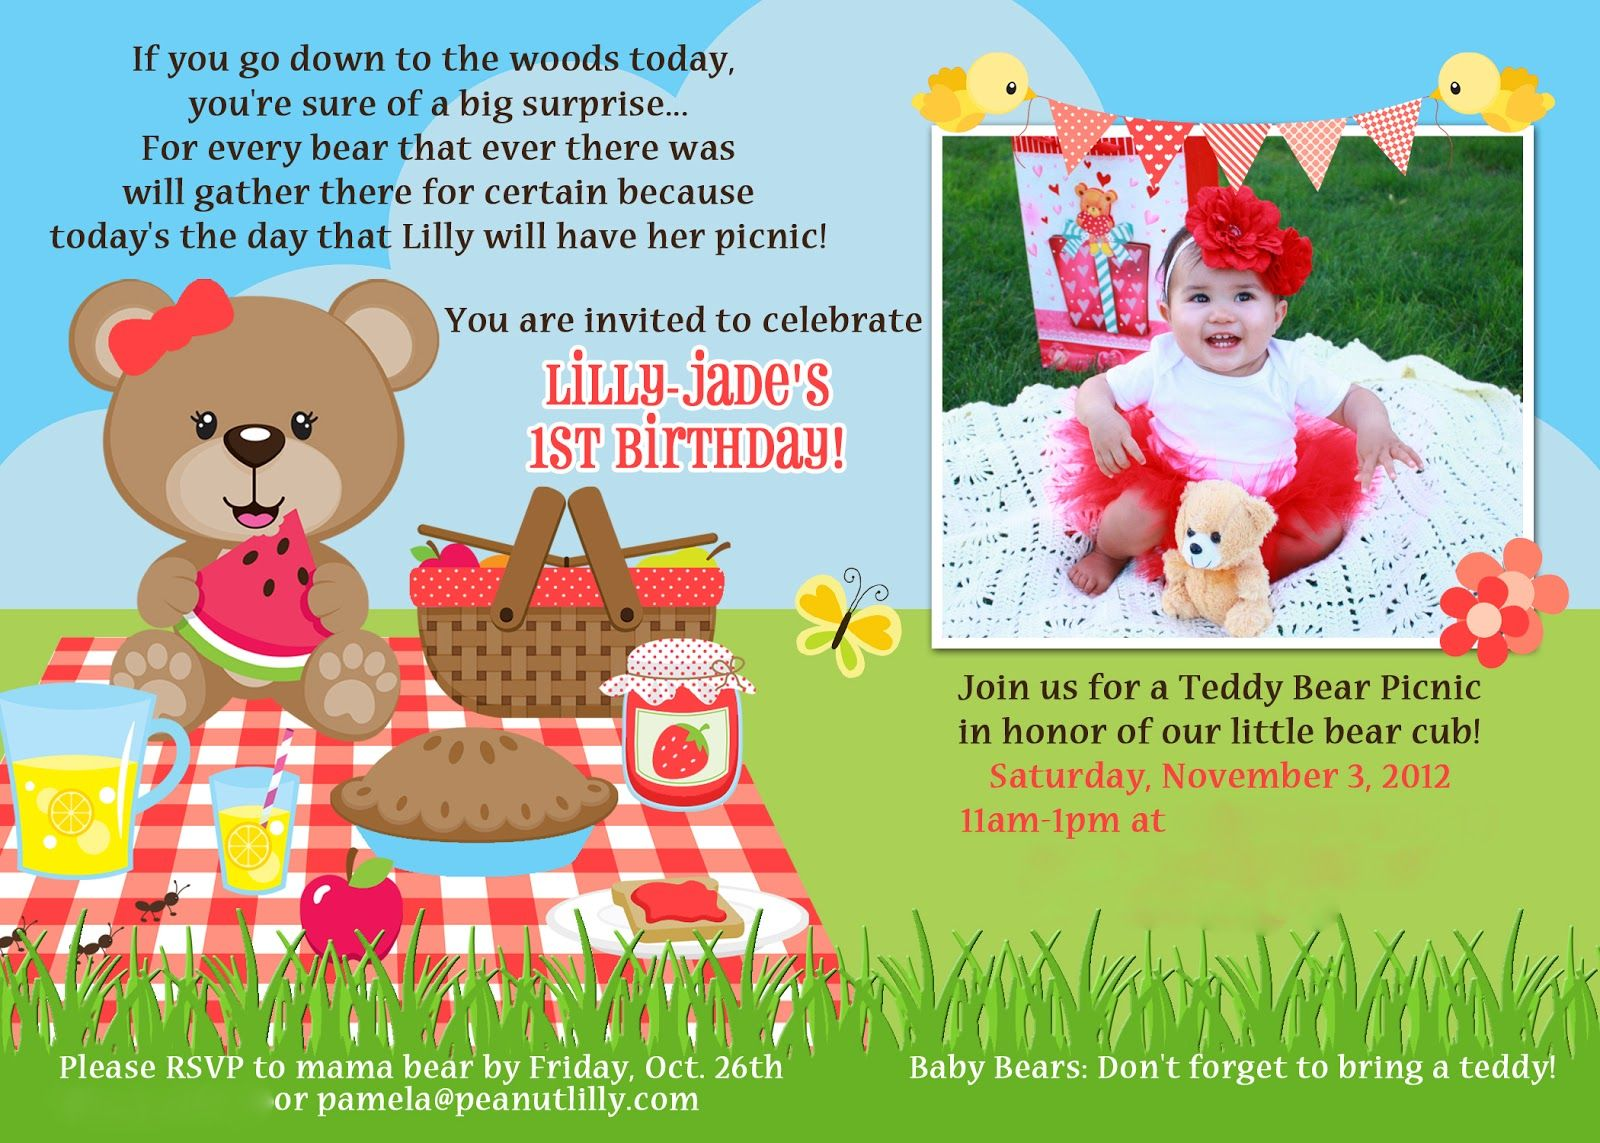 Pin by pamela kay macdonald on my parties pinterest teddy bear picnic birthday 1st birthday parties 1st birthdays teddy bear filmwisefo